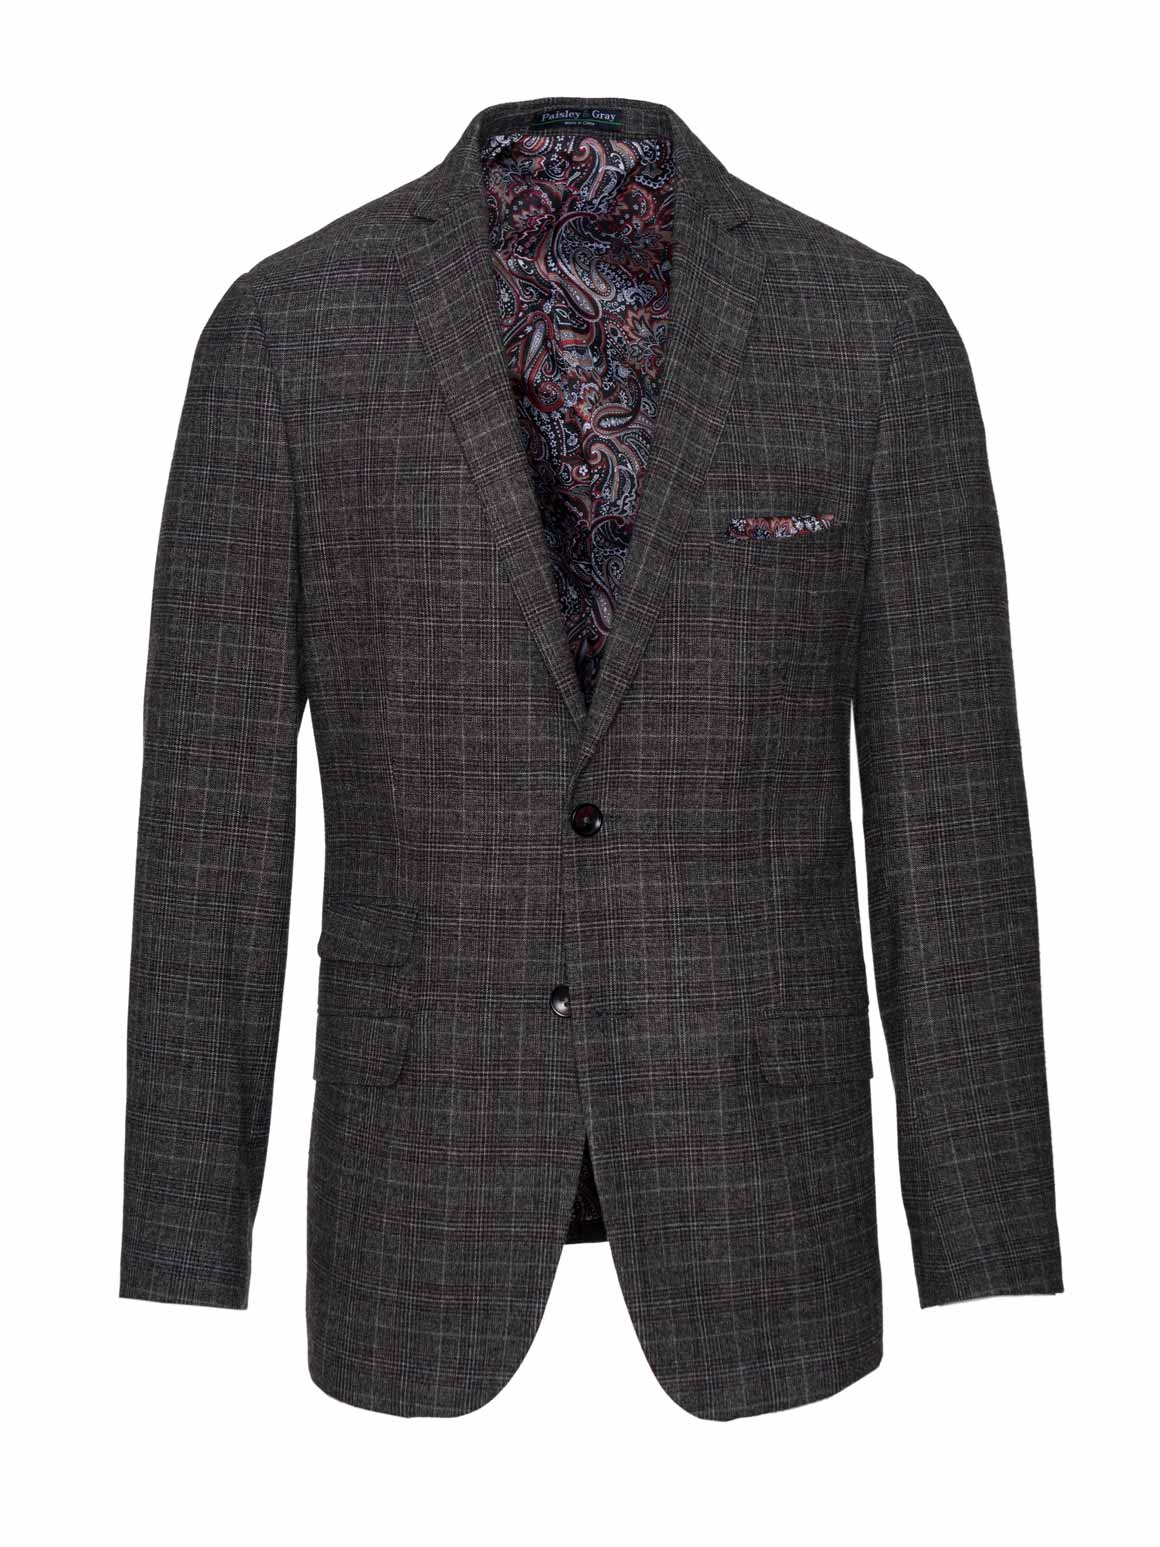 Dover Notch Jacket - Slim - Charcoal, Berry & Cream Plaid